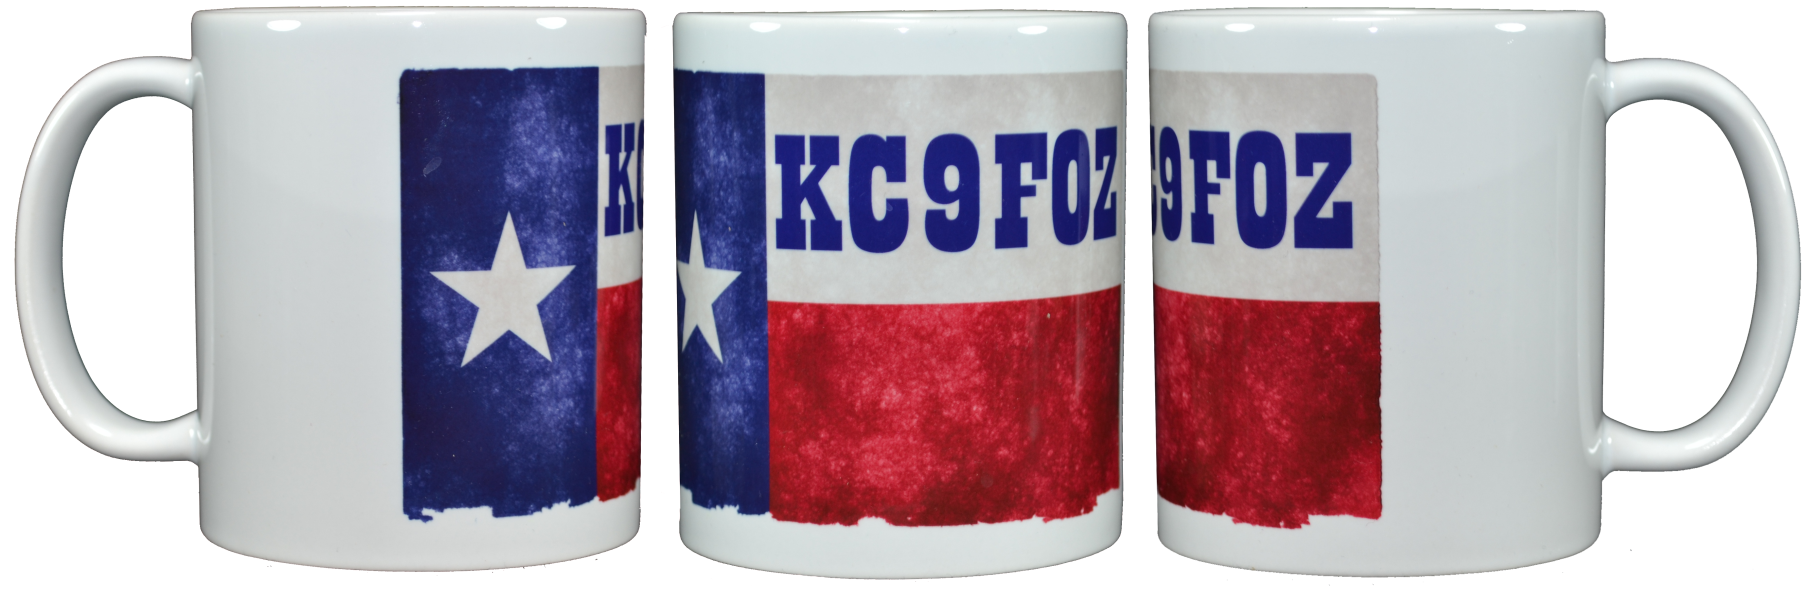 Ham Amateur Radio Texas Mug With Call.